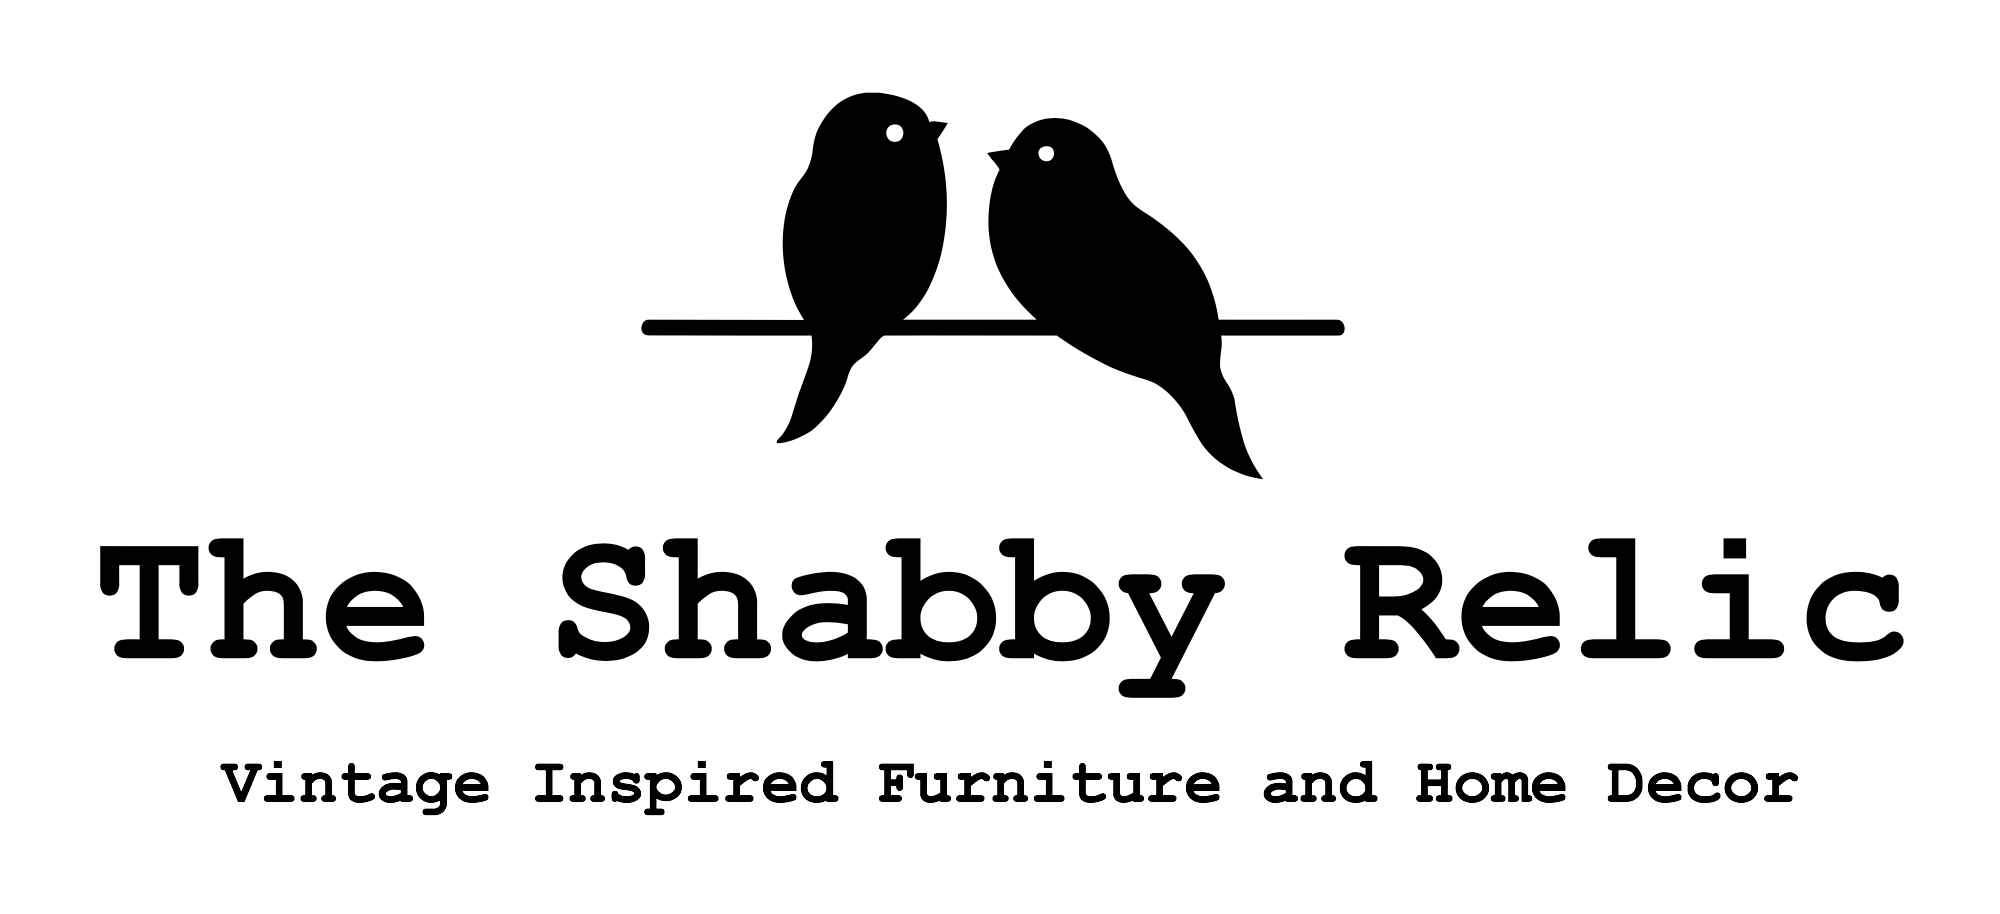 The Shabby Relic